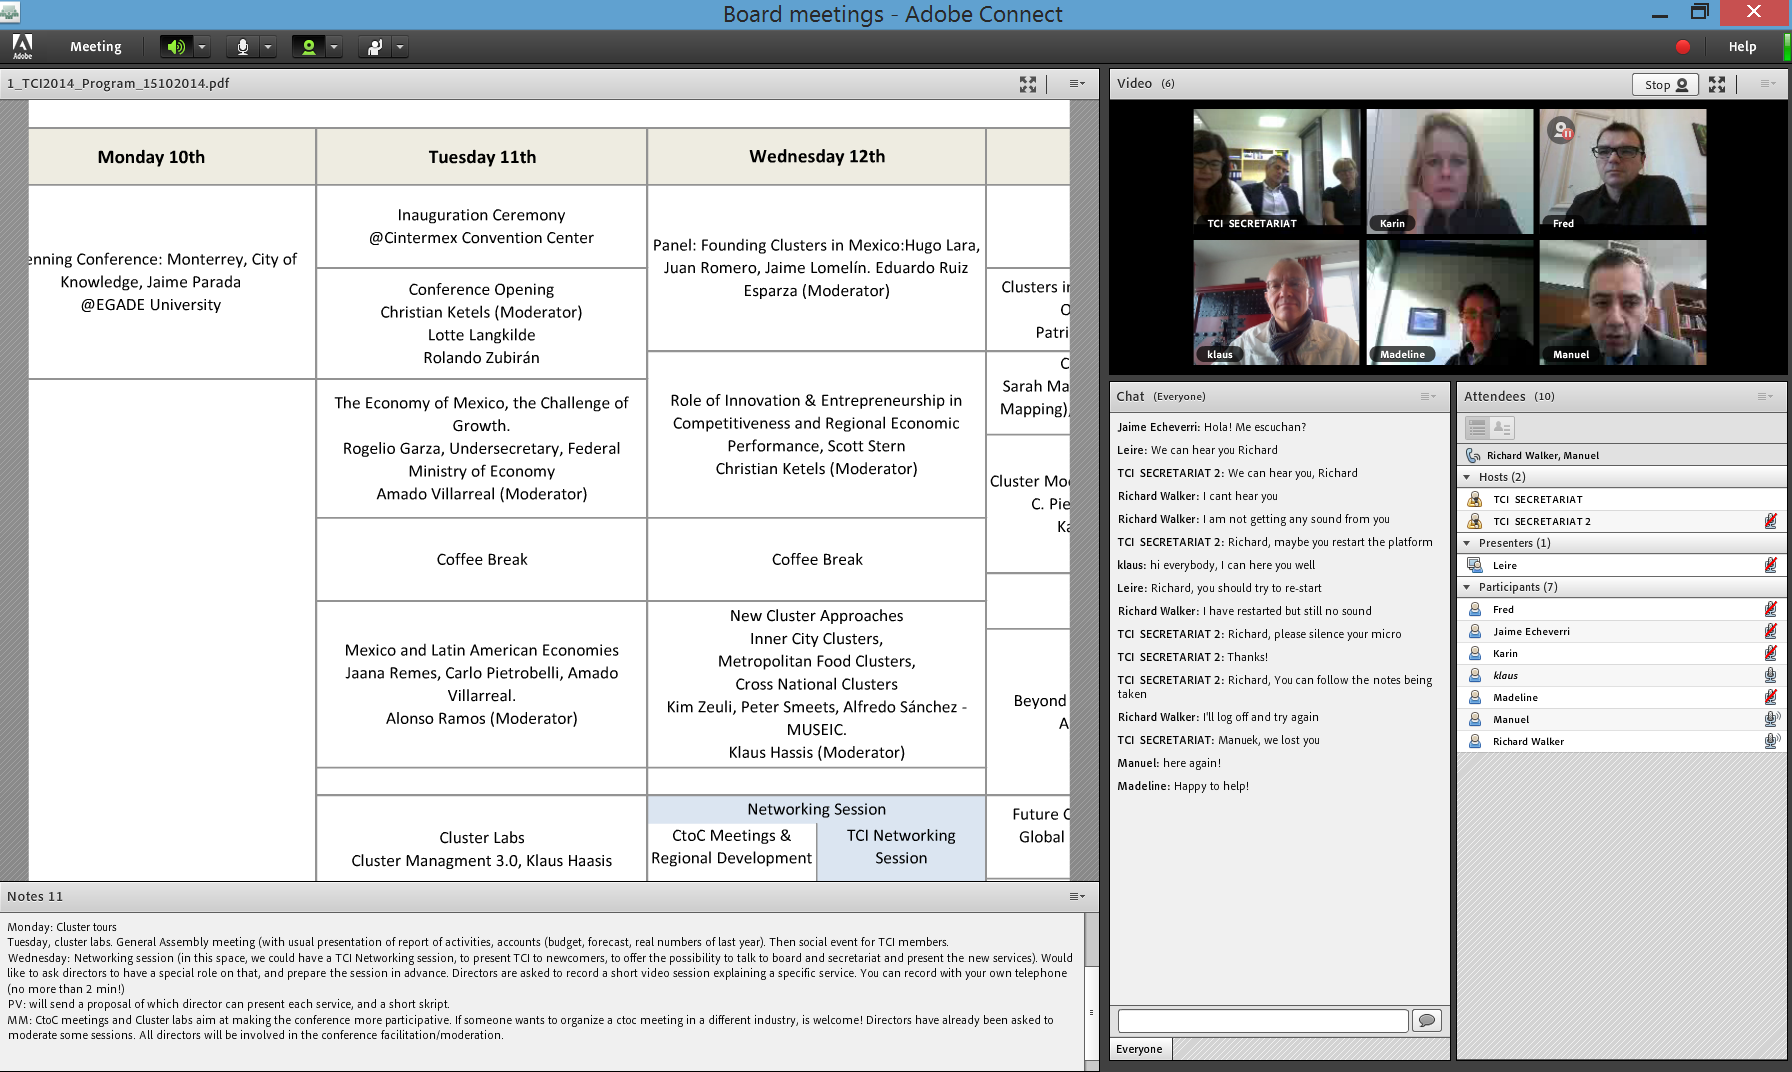 online-meeting-adobe-connect-tci